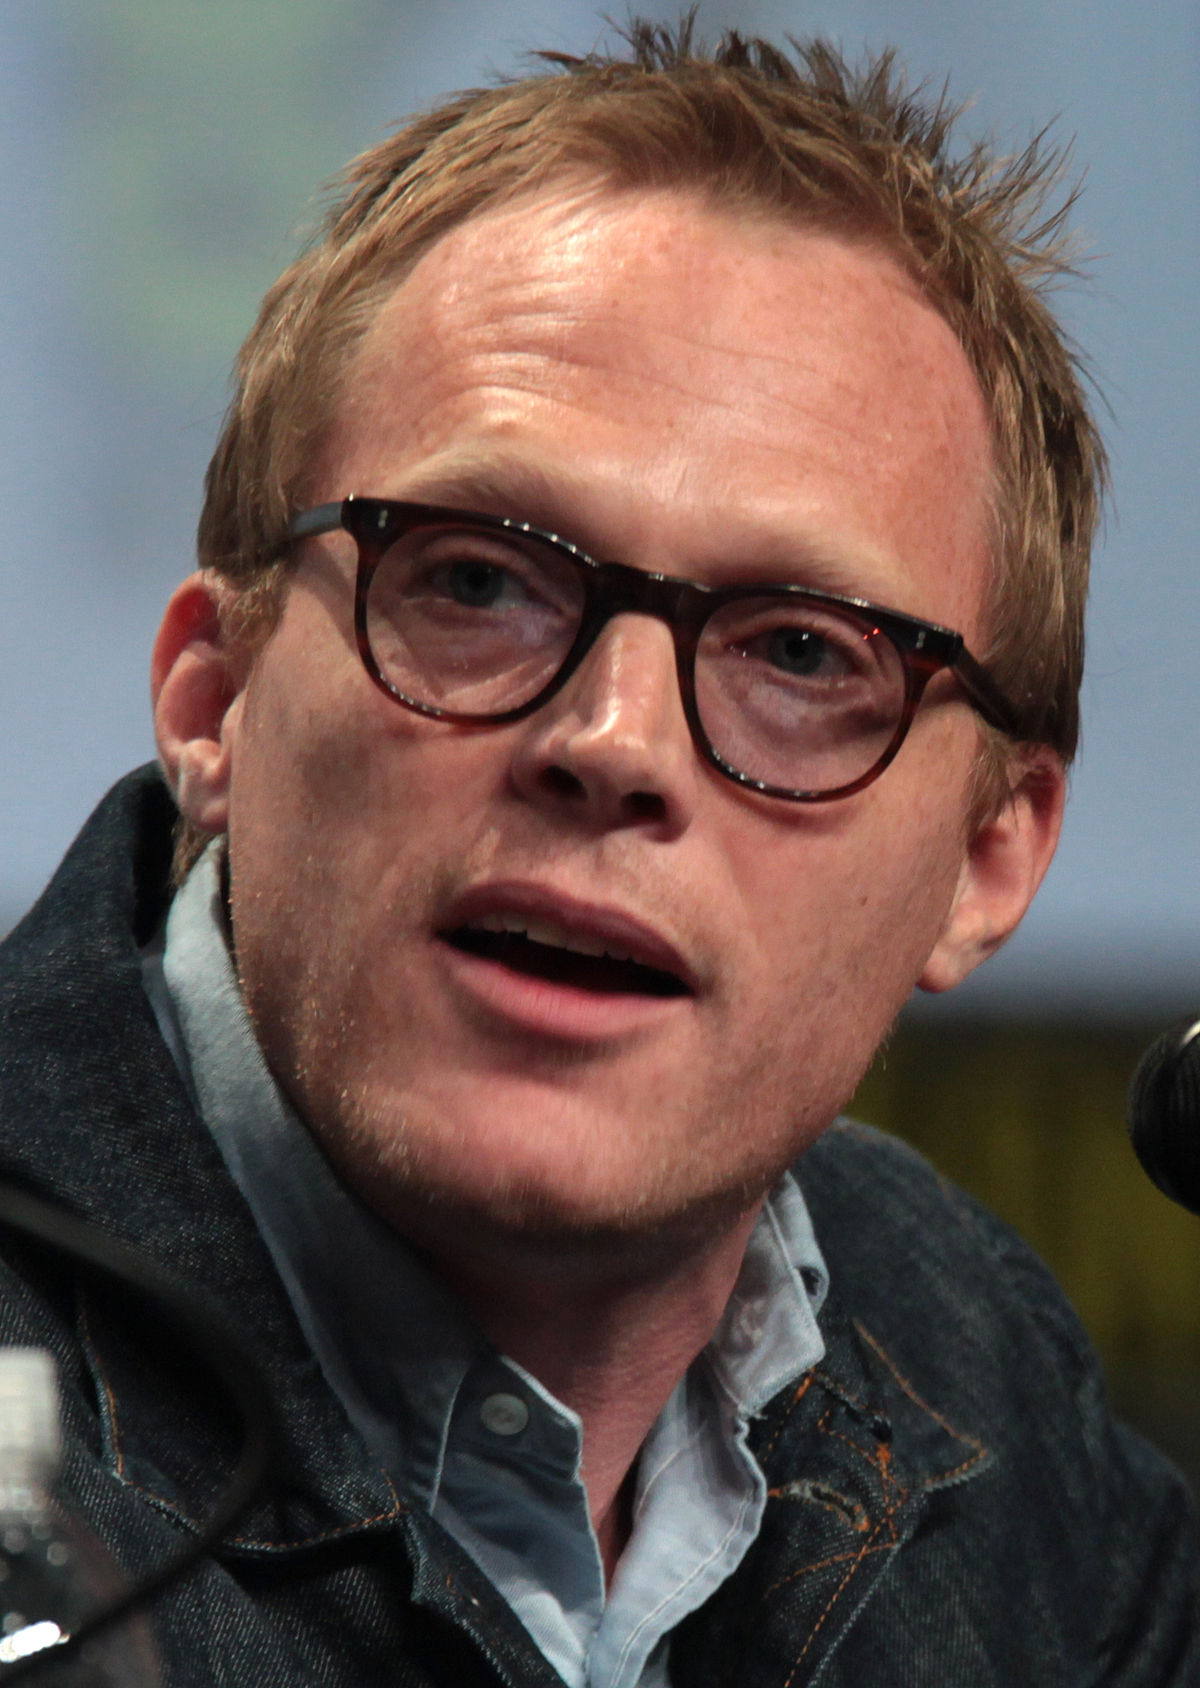 Paul Bettany (born 1971)